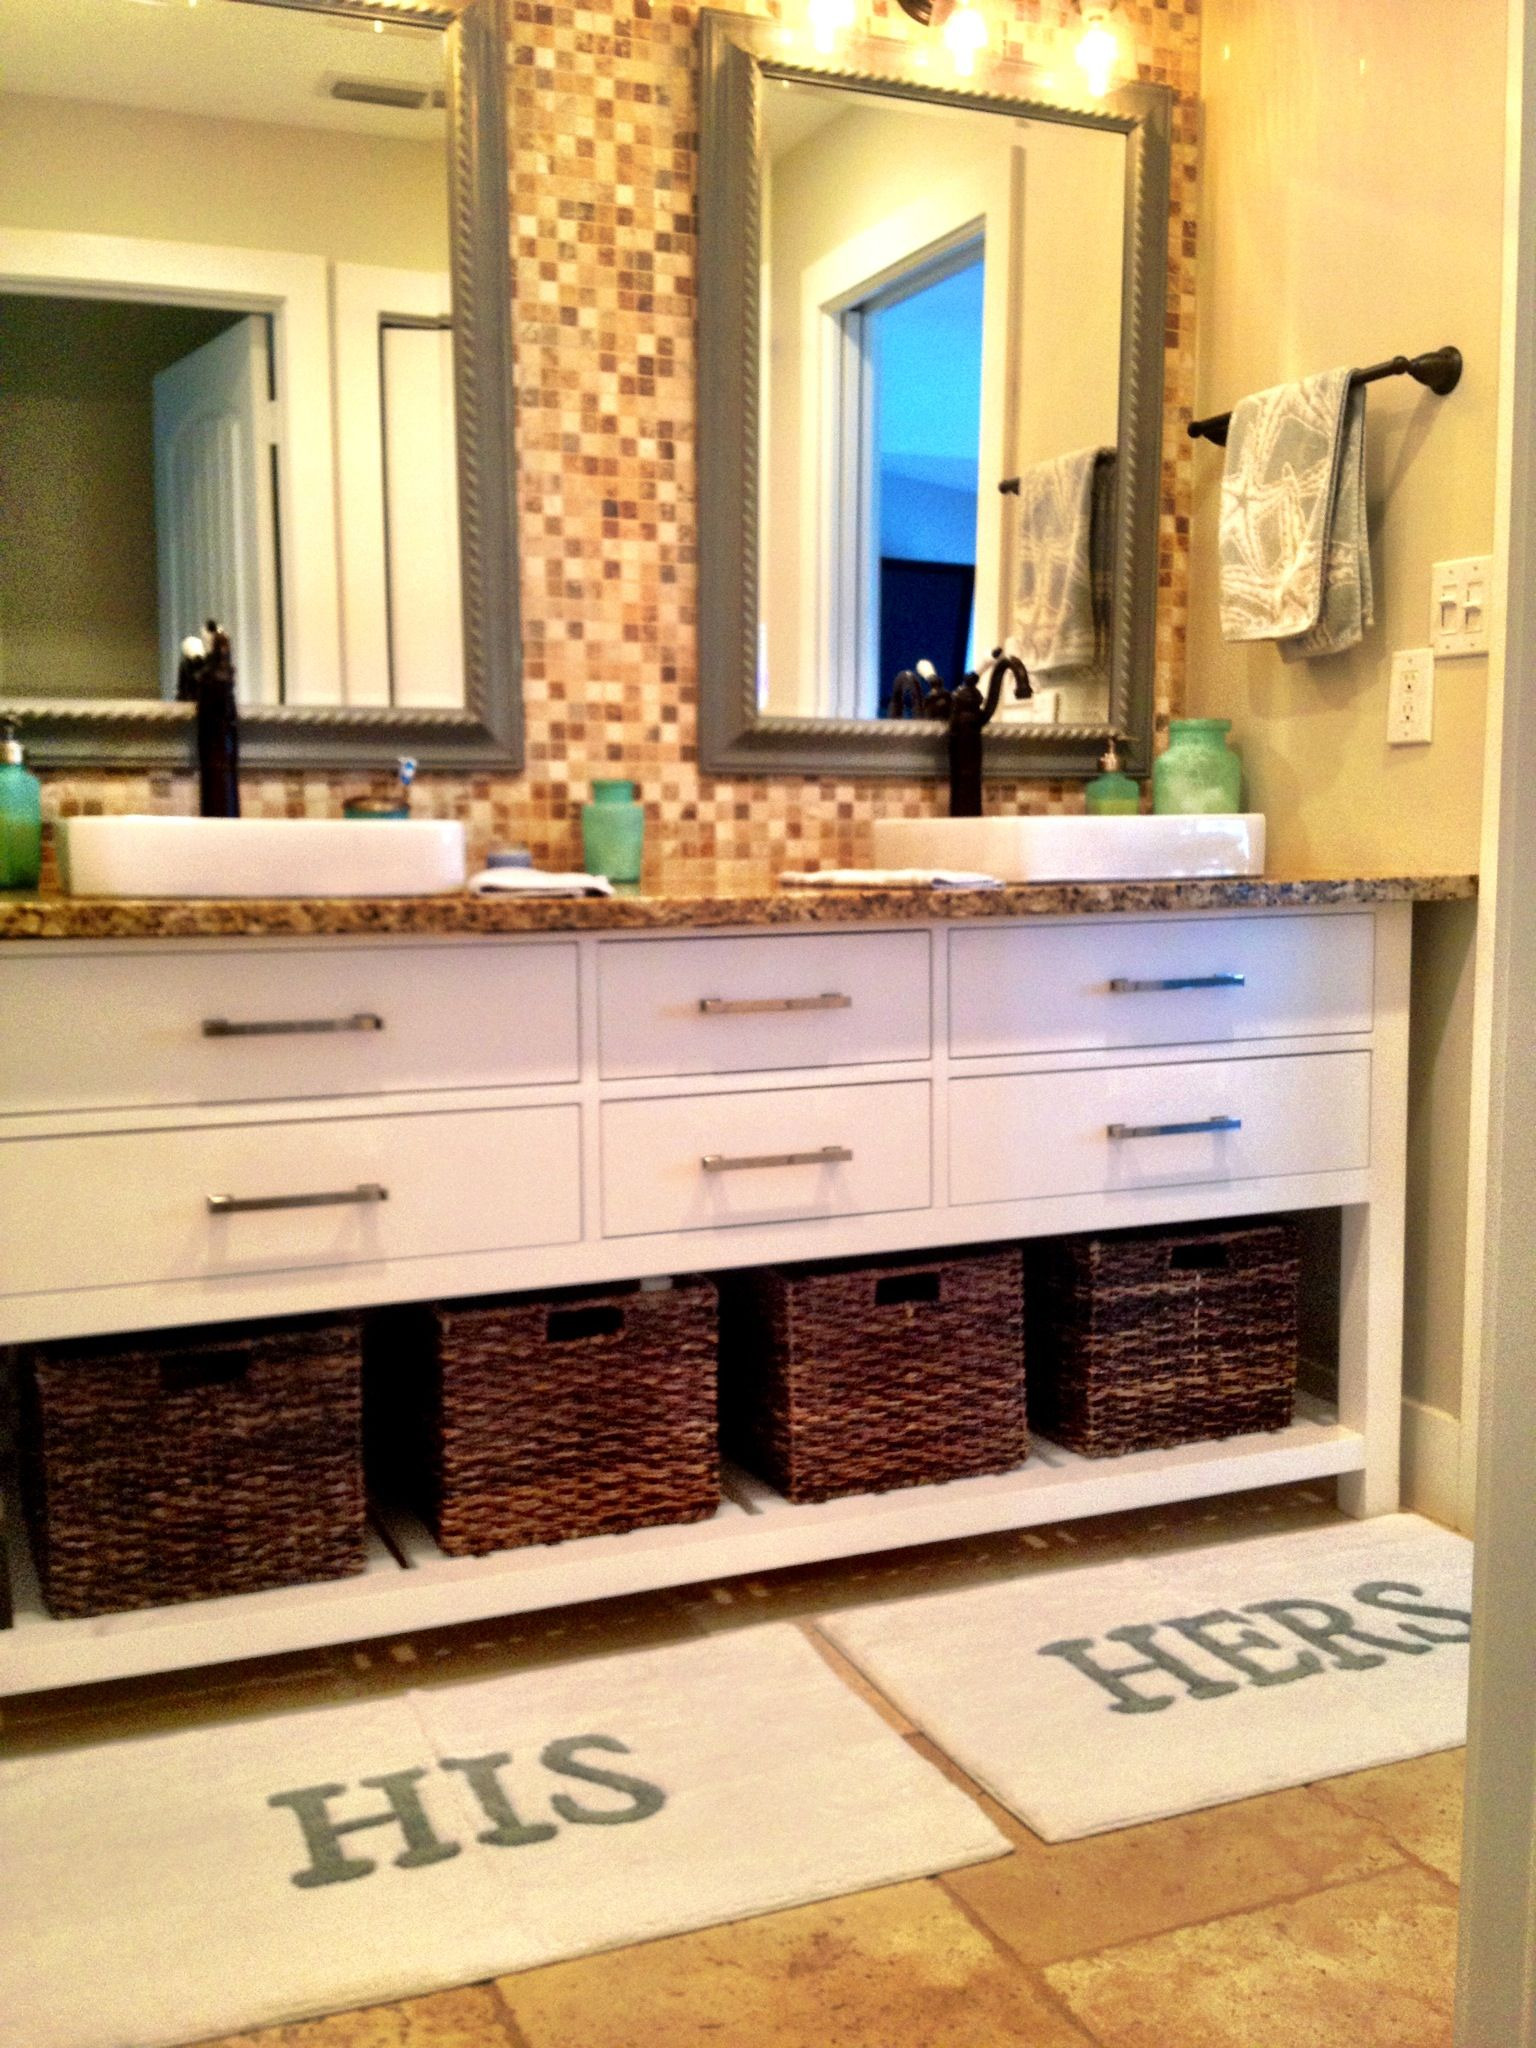 His and Hers Bathroom Decor Fresh Cute His Her Bathroom Love the Rugs and Basket Idea